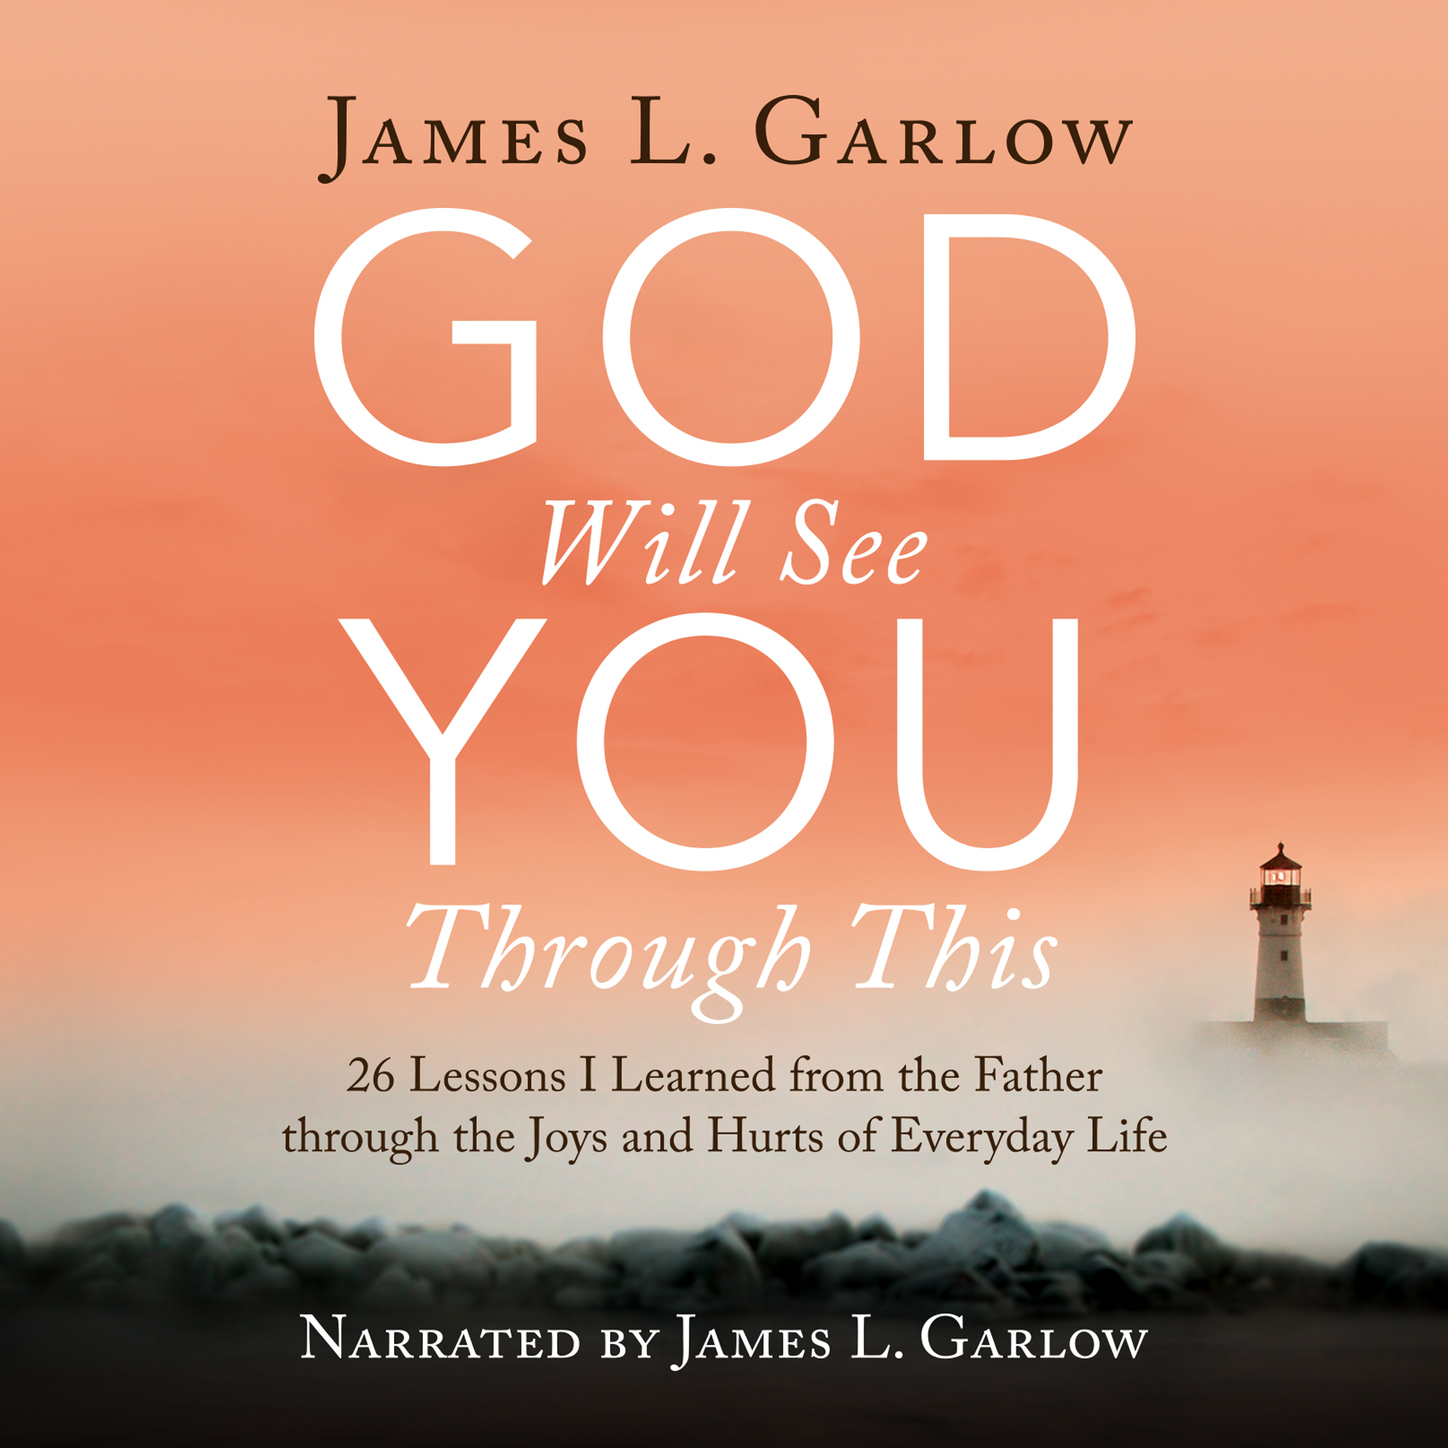 Фото - James L. Garlow God Will See You Through This - 26 Lessons I Learned from the Father through the Joys and Hurts of Everyday Life (Unabridged) see through shirt